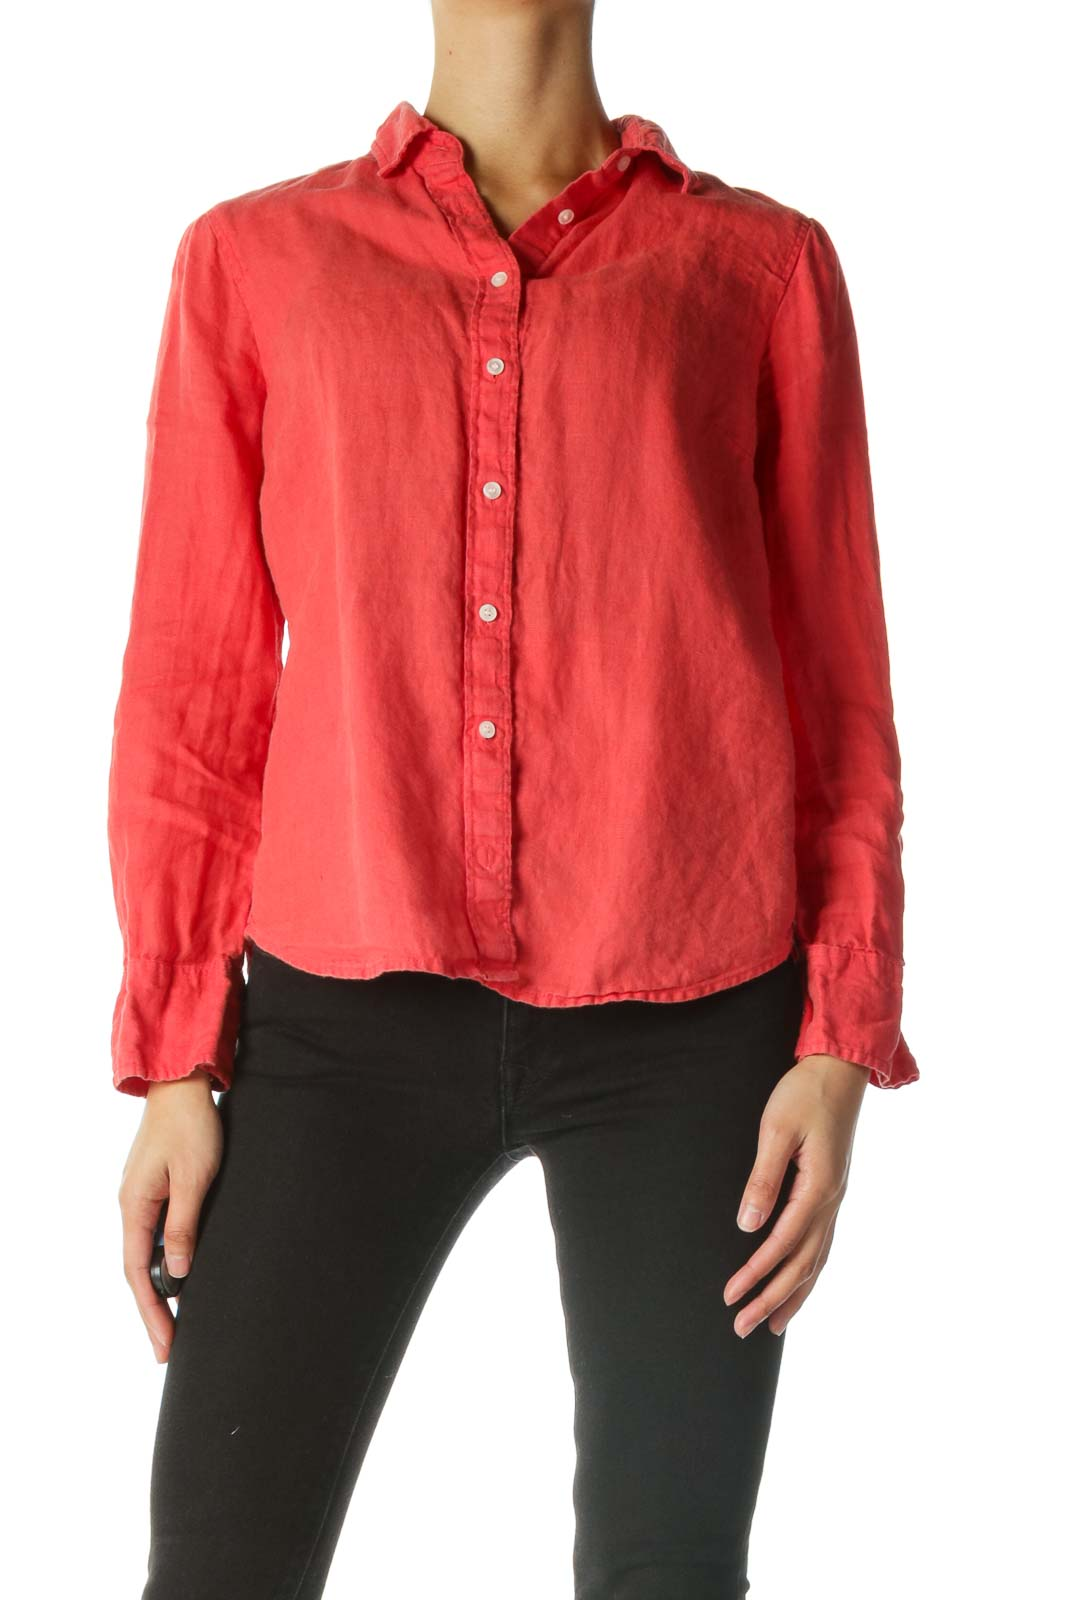 Coral Red 100% Linen Buttoned Shirt